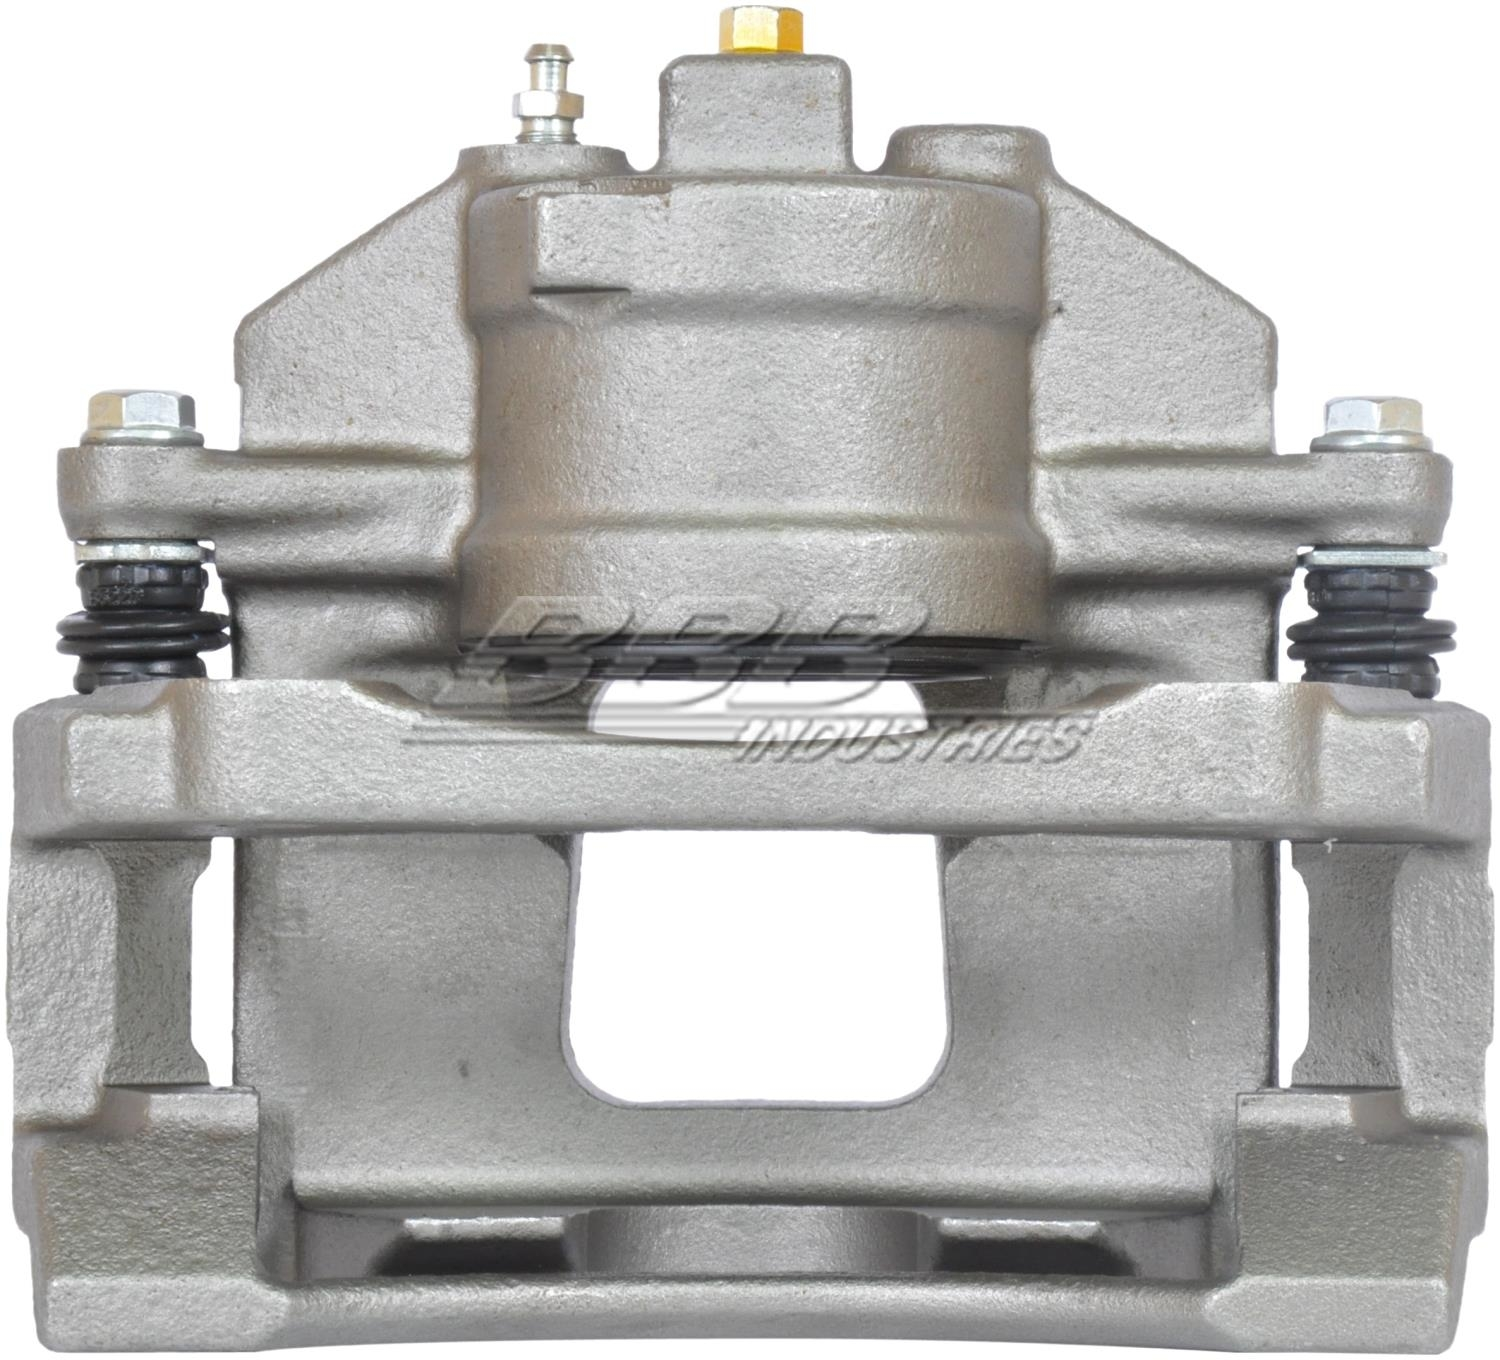 BBB INDUSTRIES - Reman Caliper W/installation Hardware (Front Left) - BBA 99-17310A